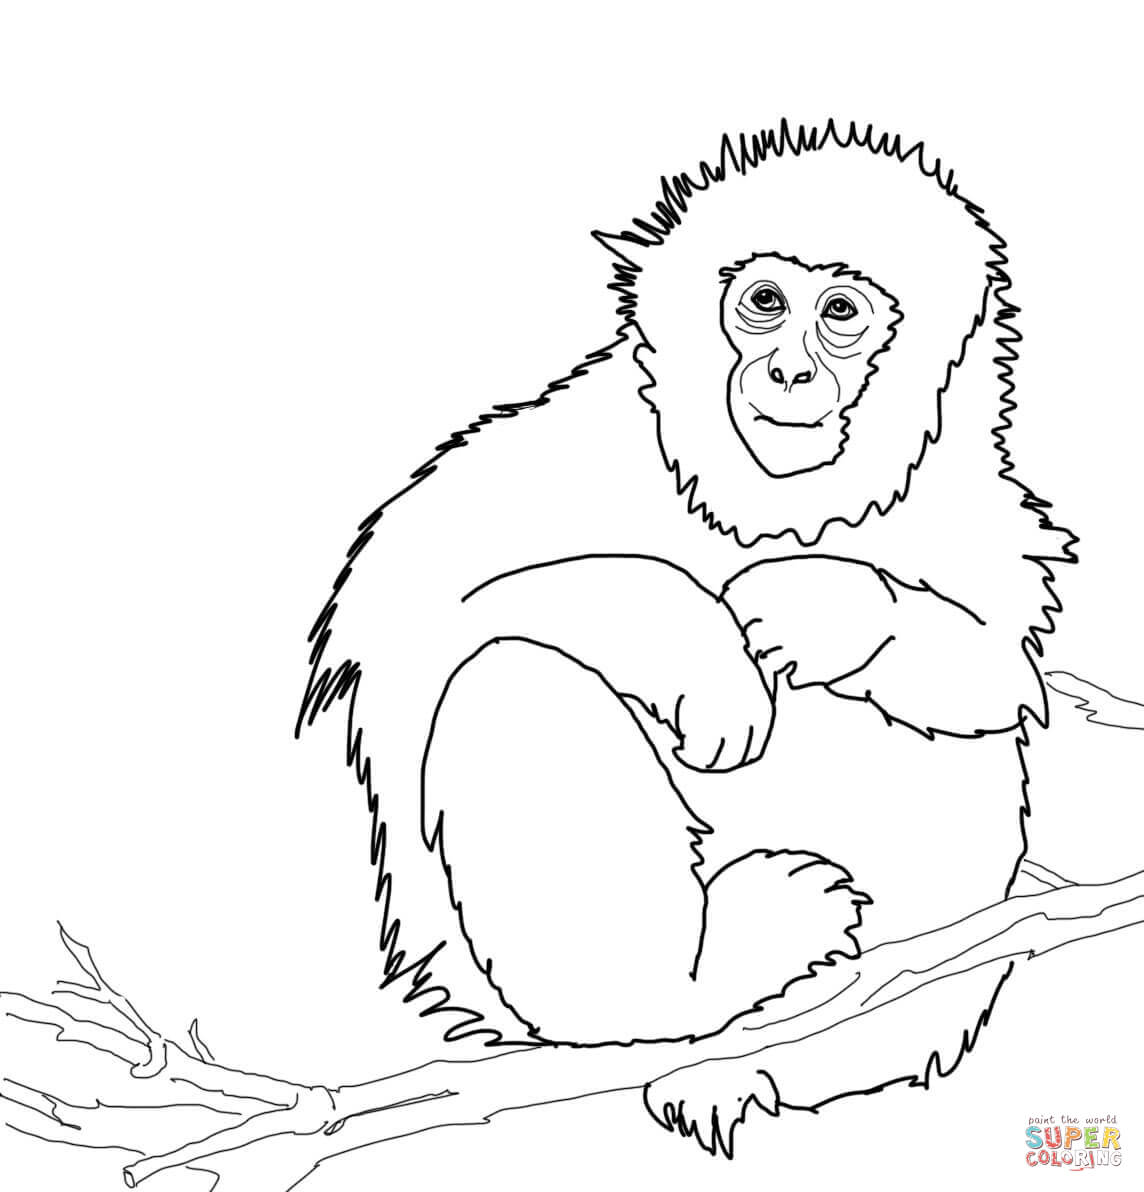 Howler Monkey coloring #11, Download drawings